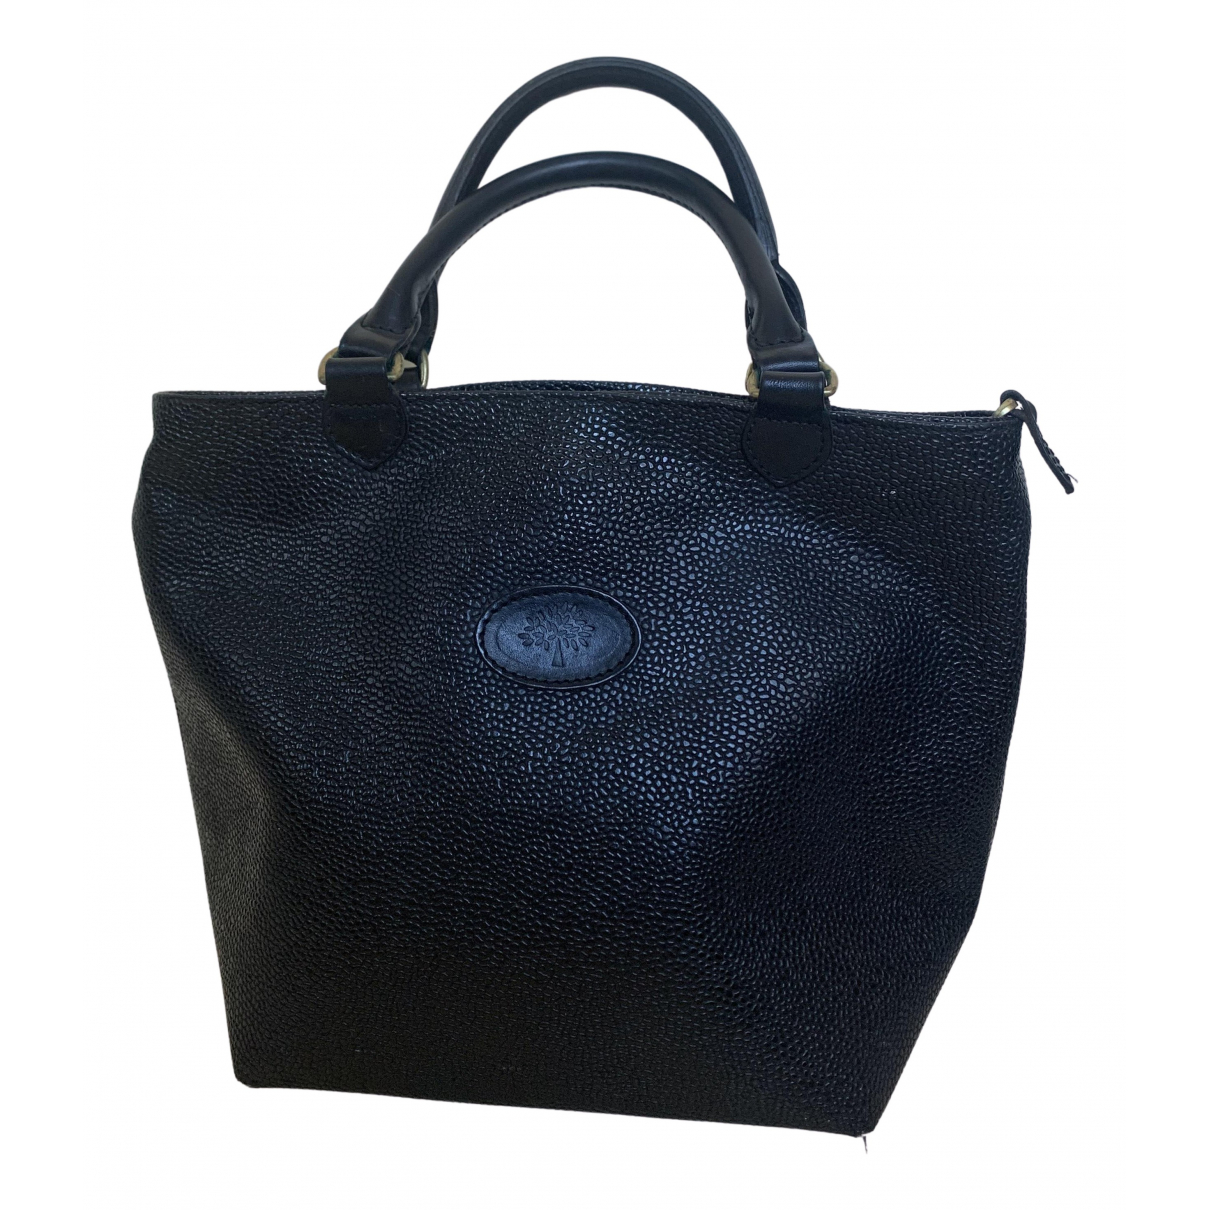 Mulberry N Black Cloth handbag for Women N